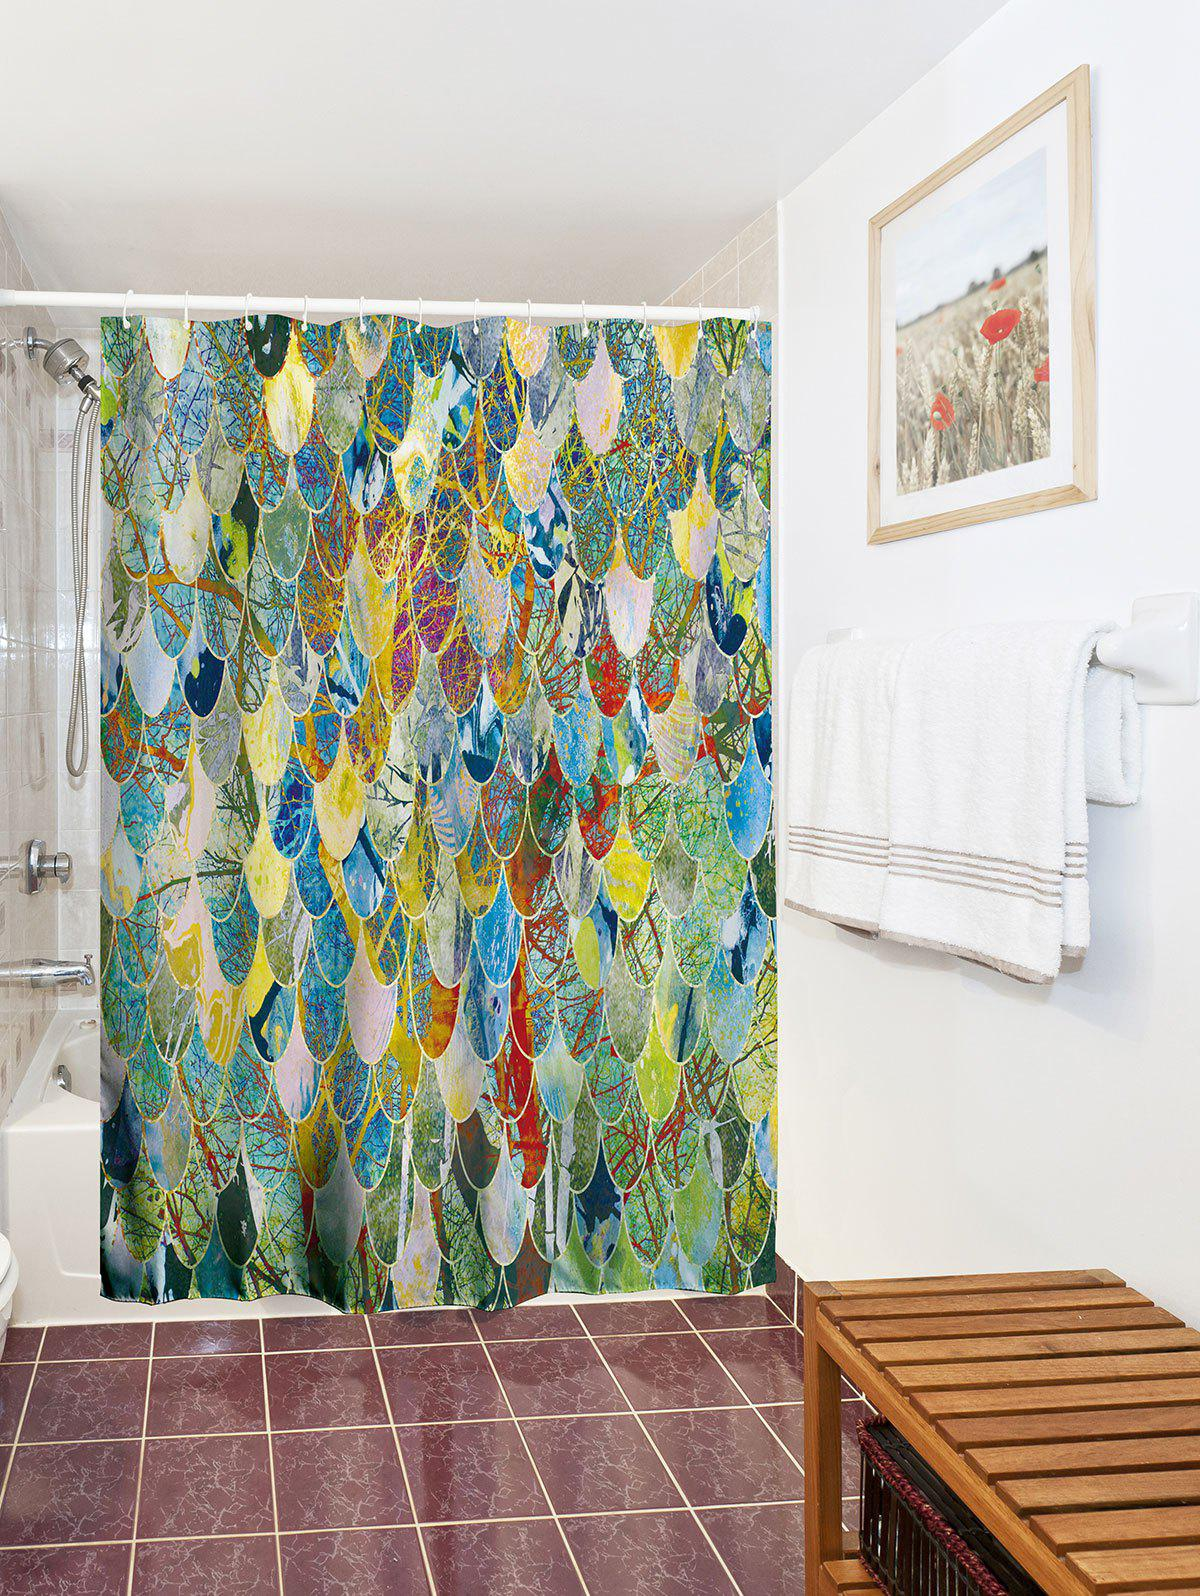 2018 art fish scale unique bathroom shower curtain colormix w inch l inch in shower curtains. Black Bedroom Furniture Sets. Home Design Ideas